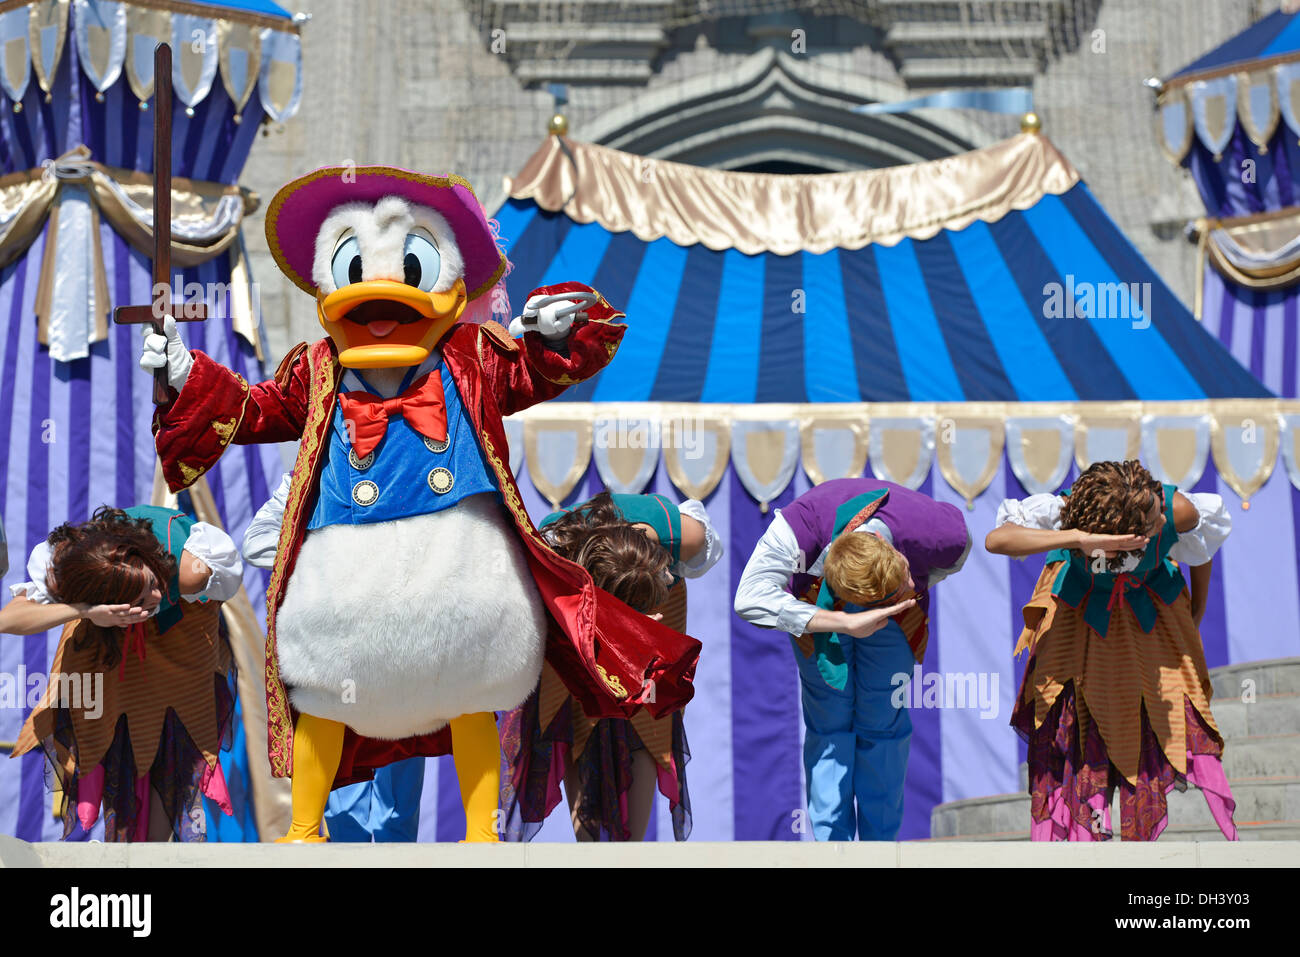 Donald Duck on stage, Dream Along Show at Cinderella Castle, Magic Kingdom, Disney World Resort, Orlando Florida - Stock Image